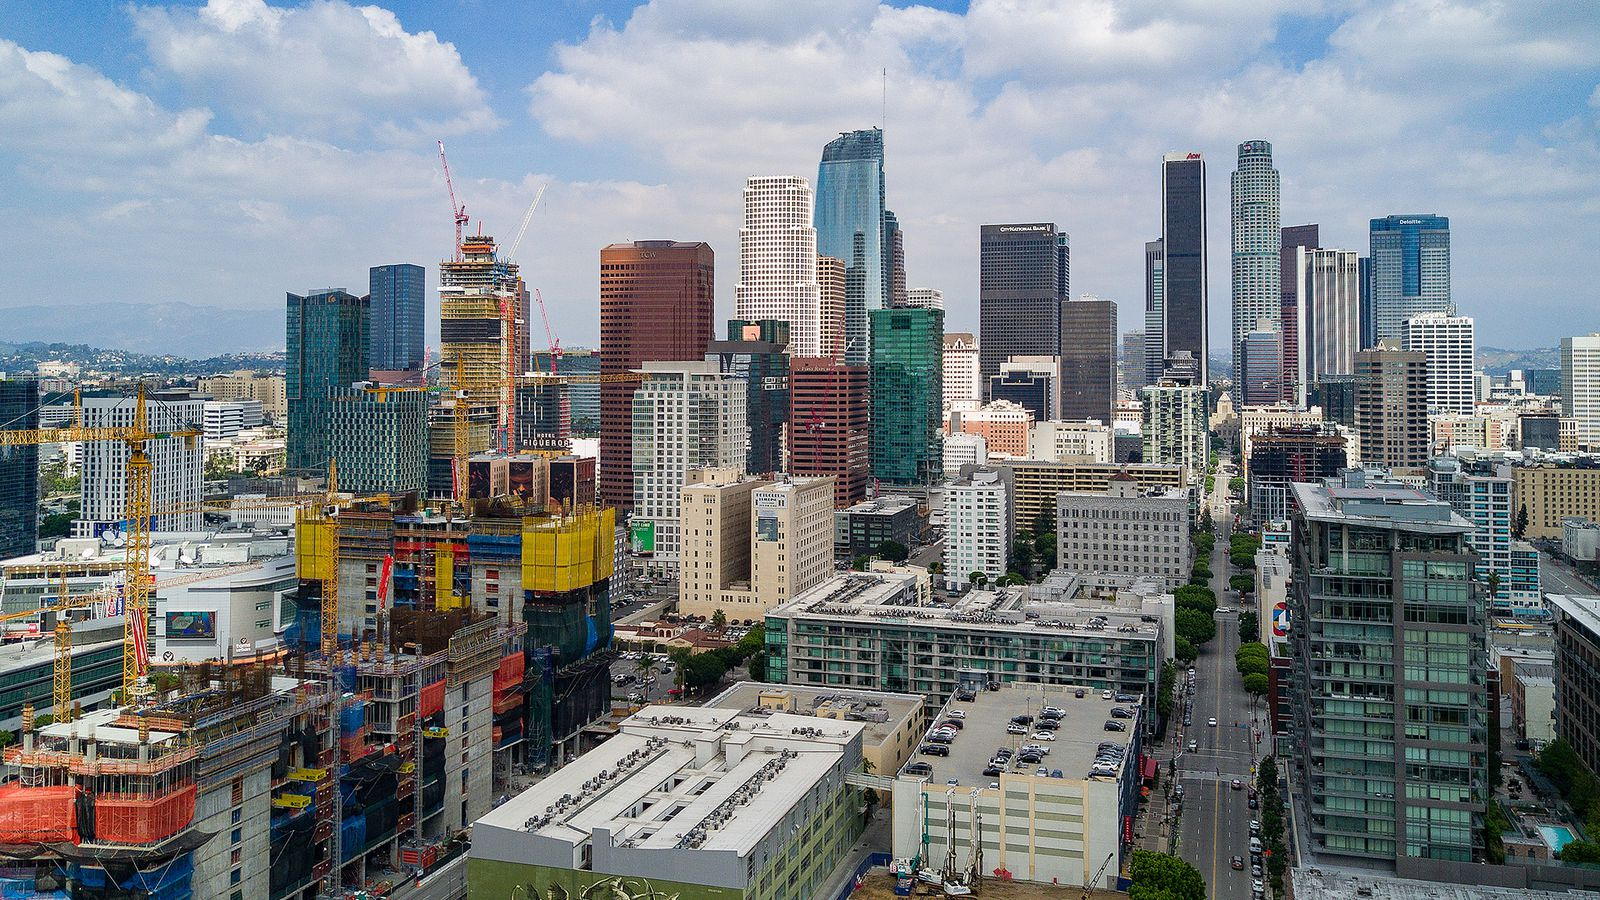 Downtown LA added 7,551 apartments in the last six years ...